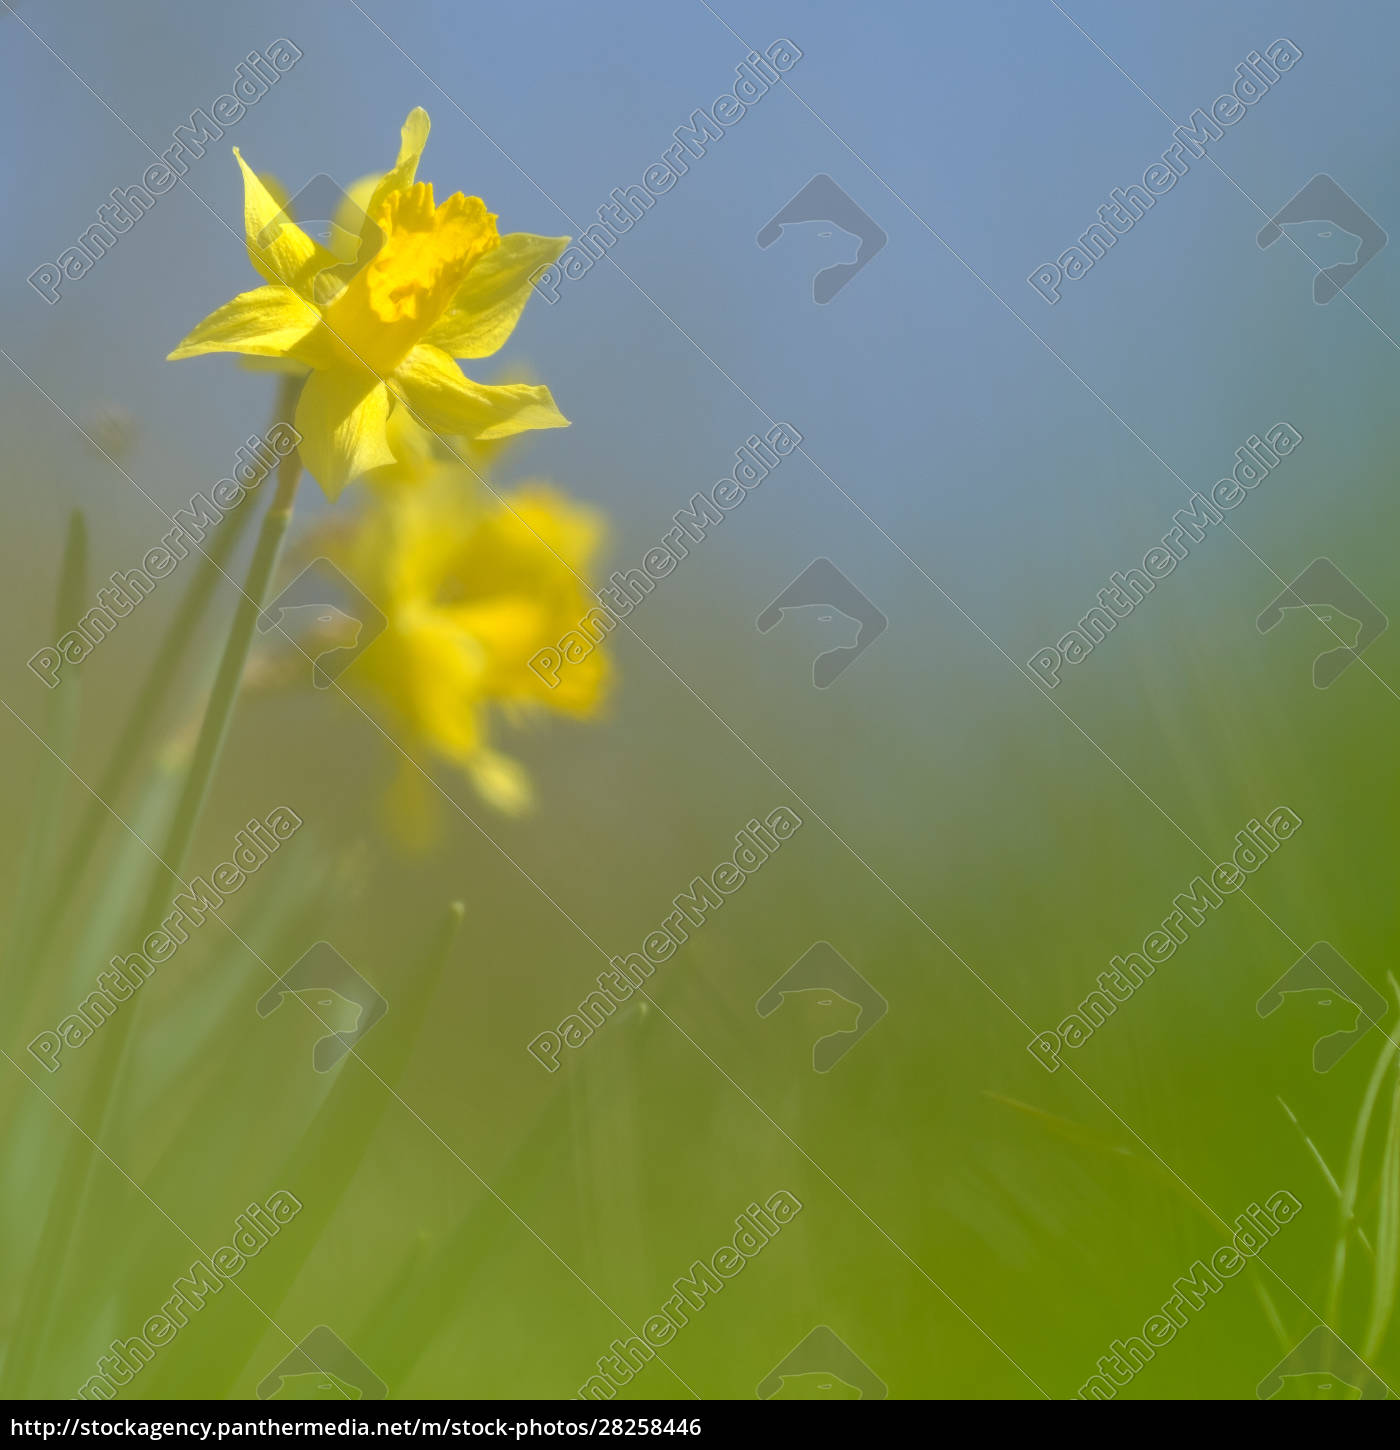 yellow, daffodil, blossom, on, a, meadow - 28258446